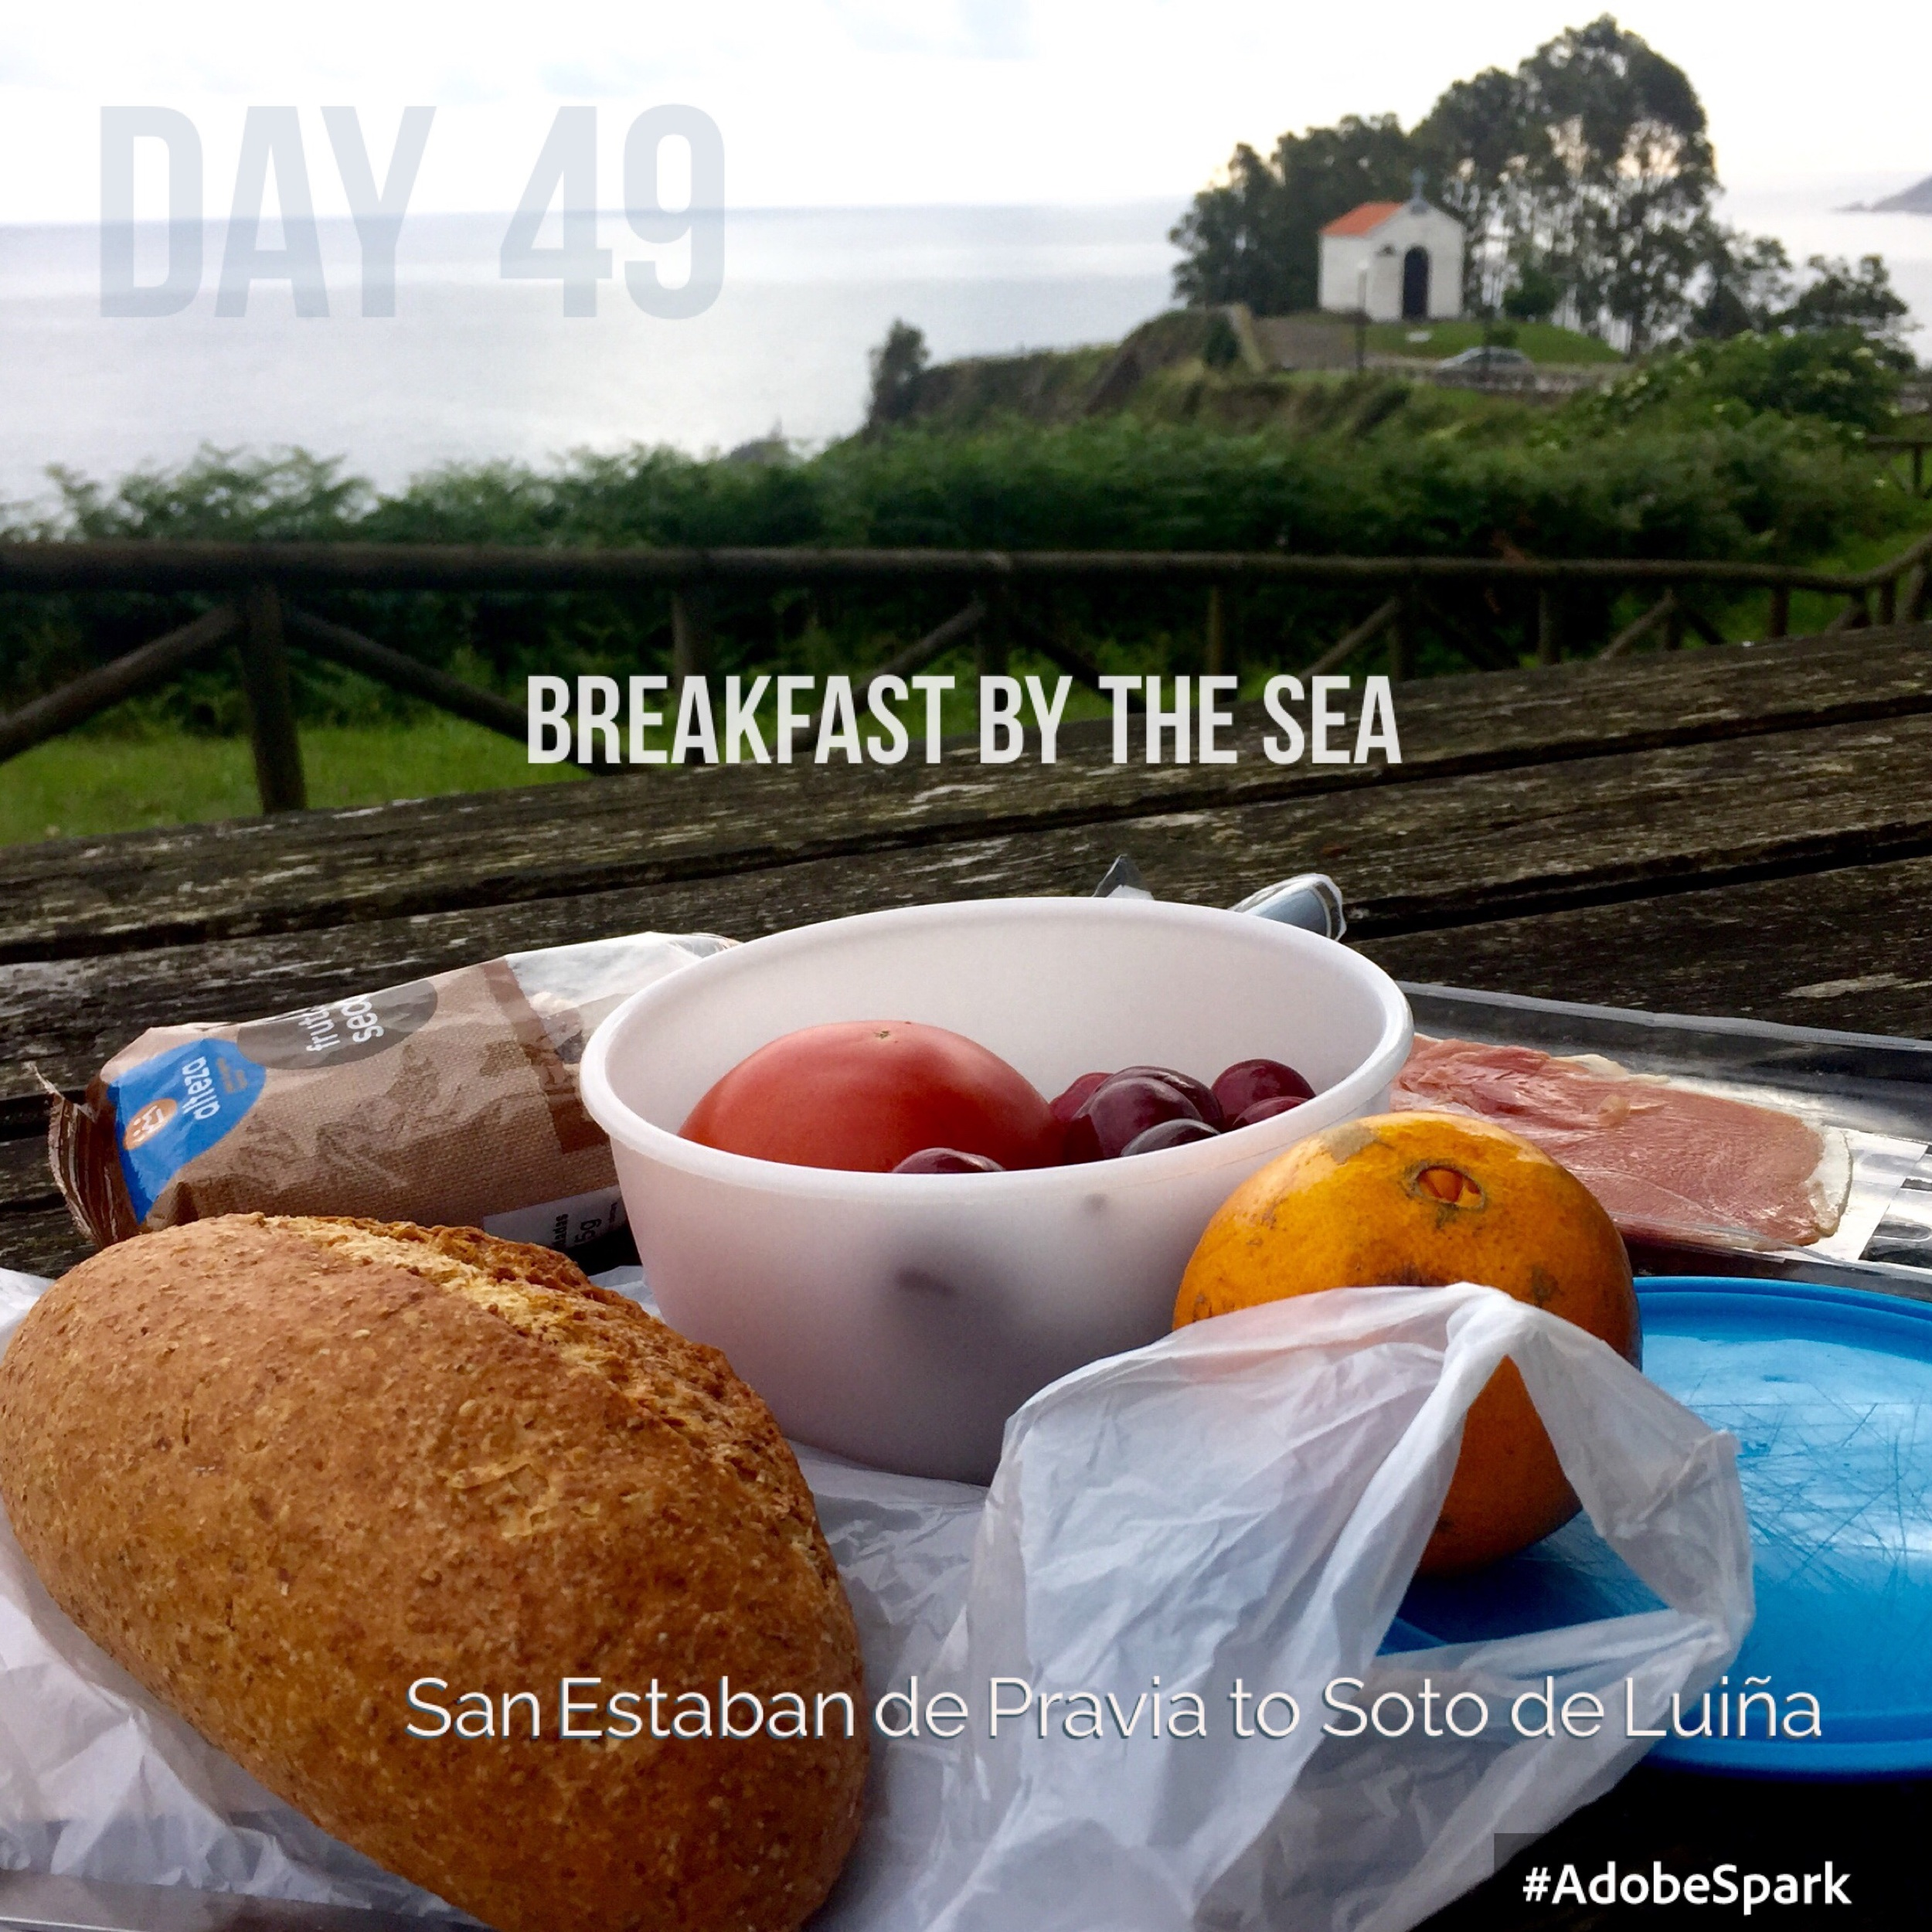 Breakfast surrounded by sea